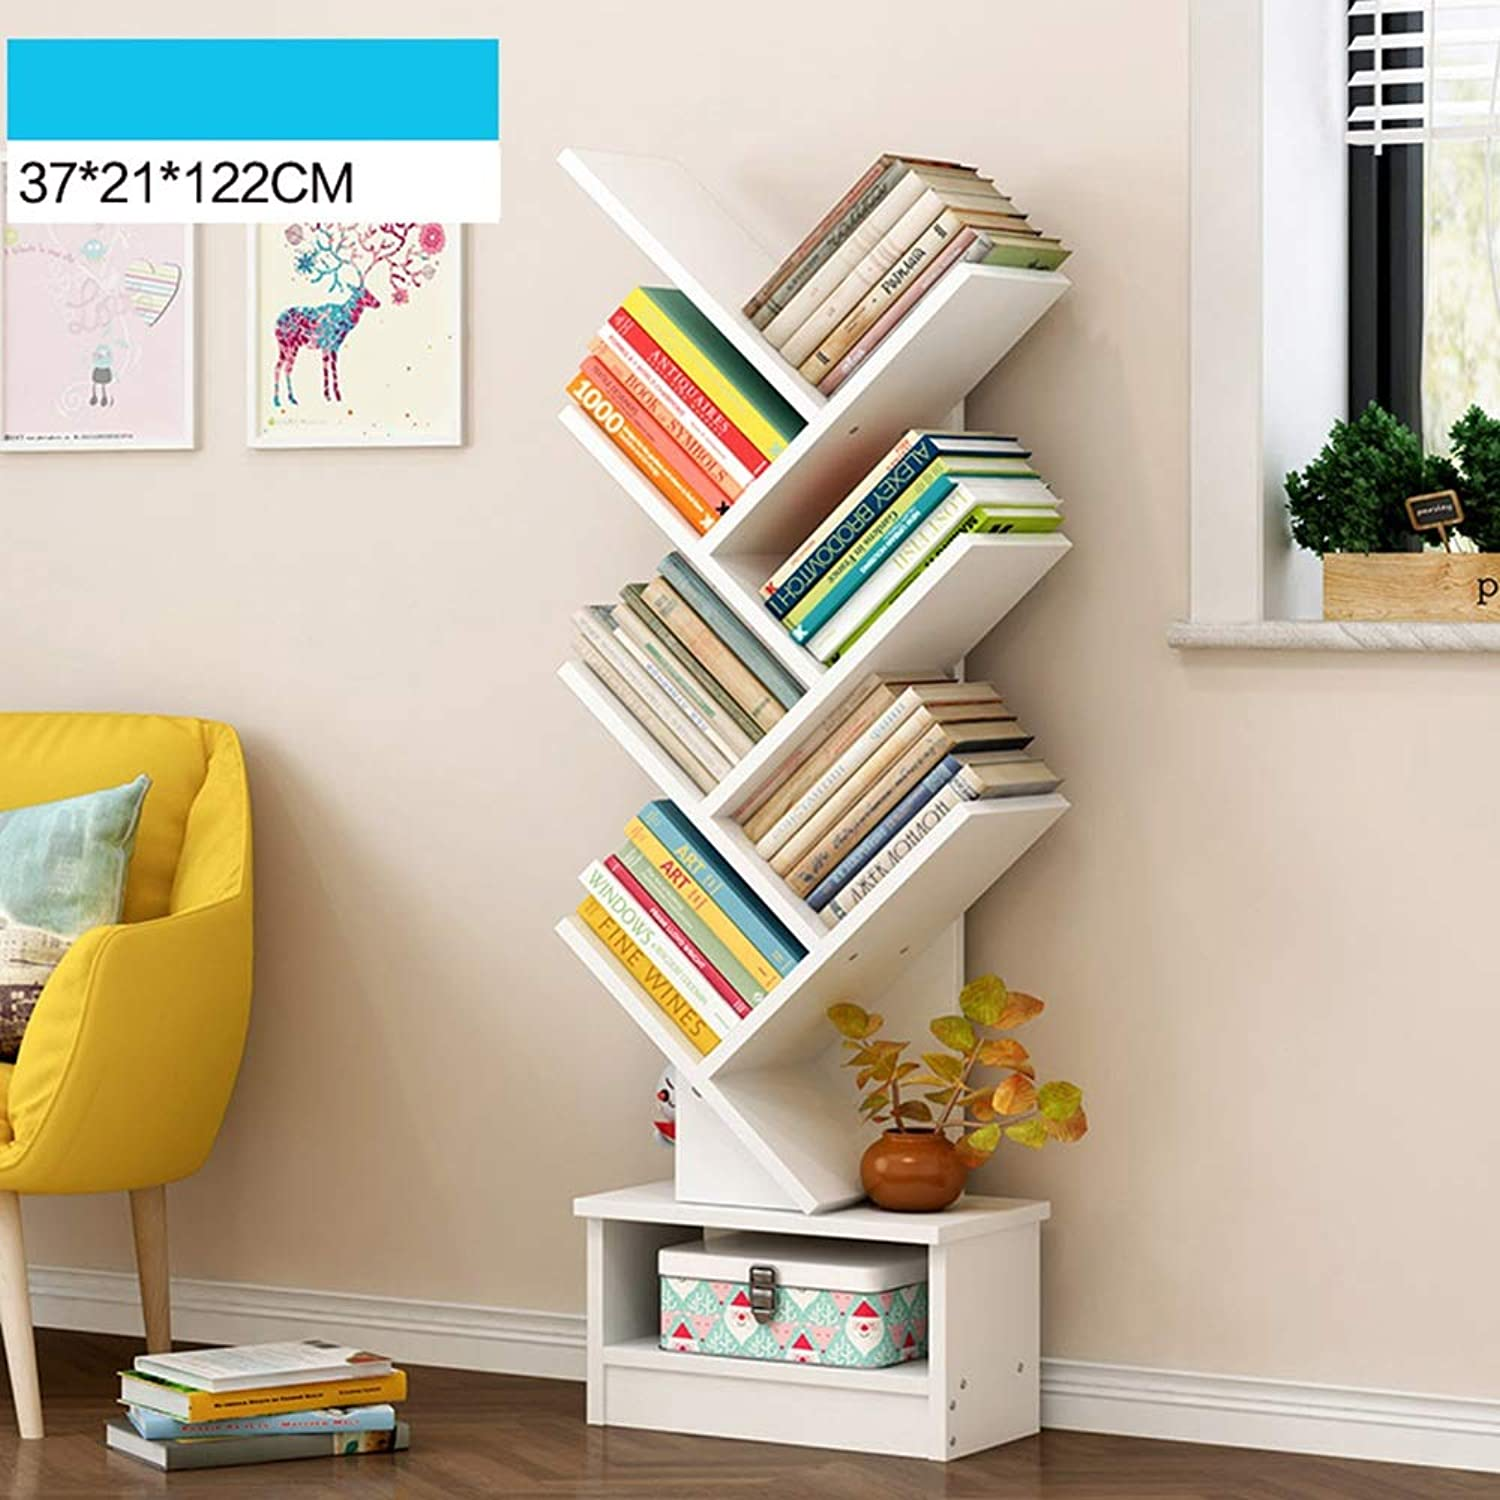 ZR- Wood Bookshelf Tree Storage Shelf Floor Standing Bookcase Organizer For Living Room - Wall decoration (color   White-7 layers)